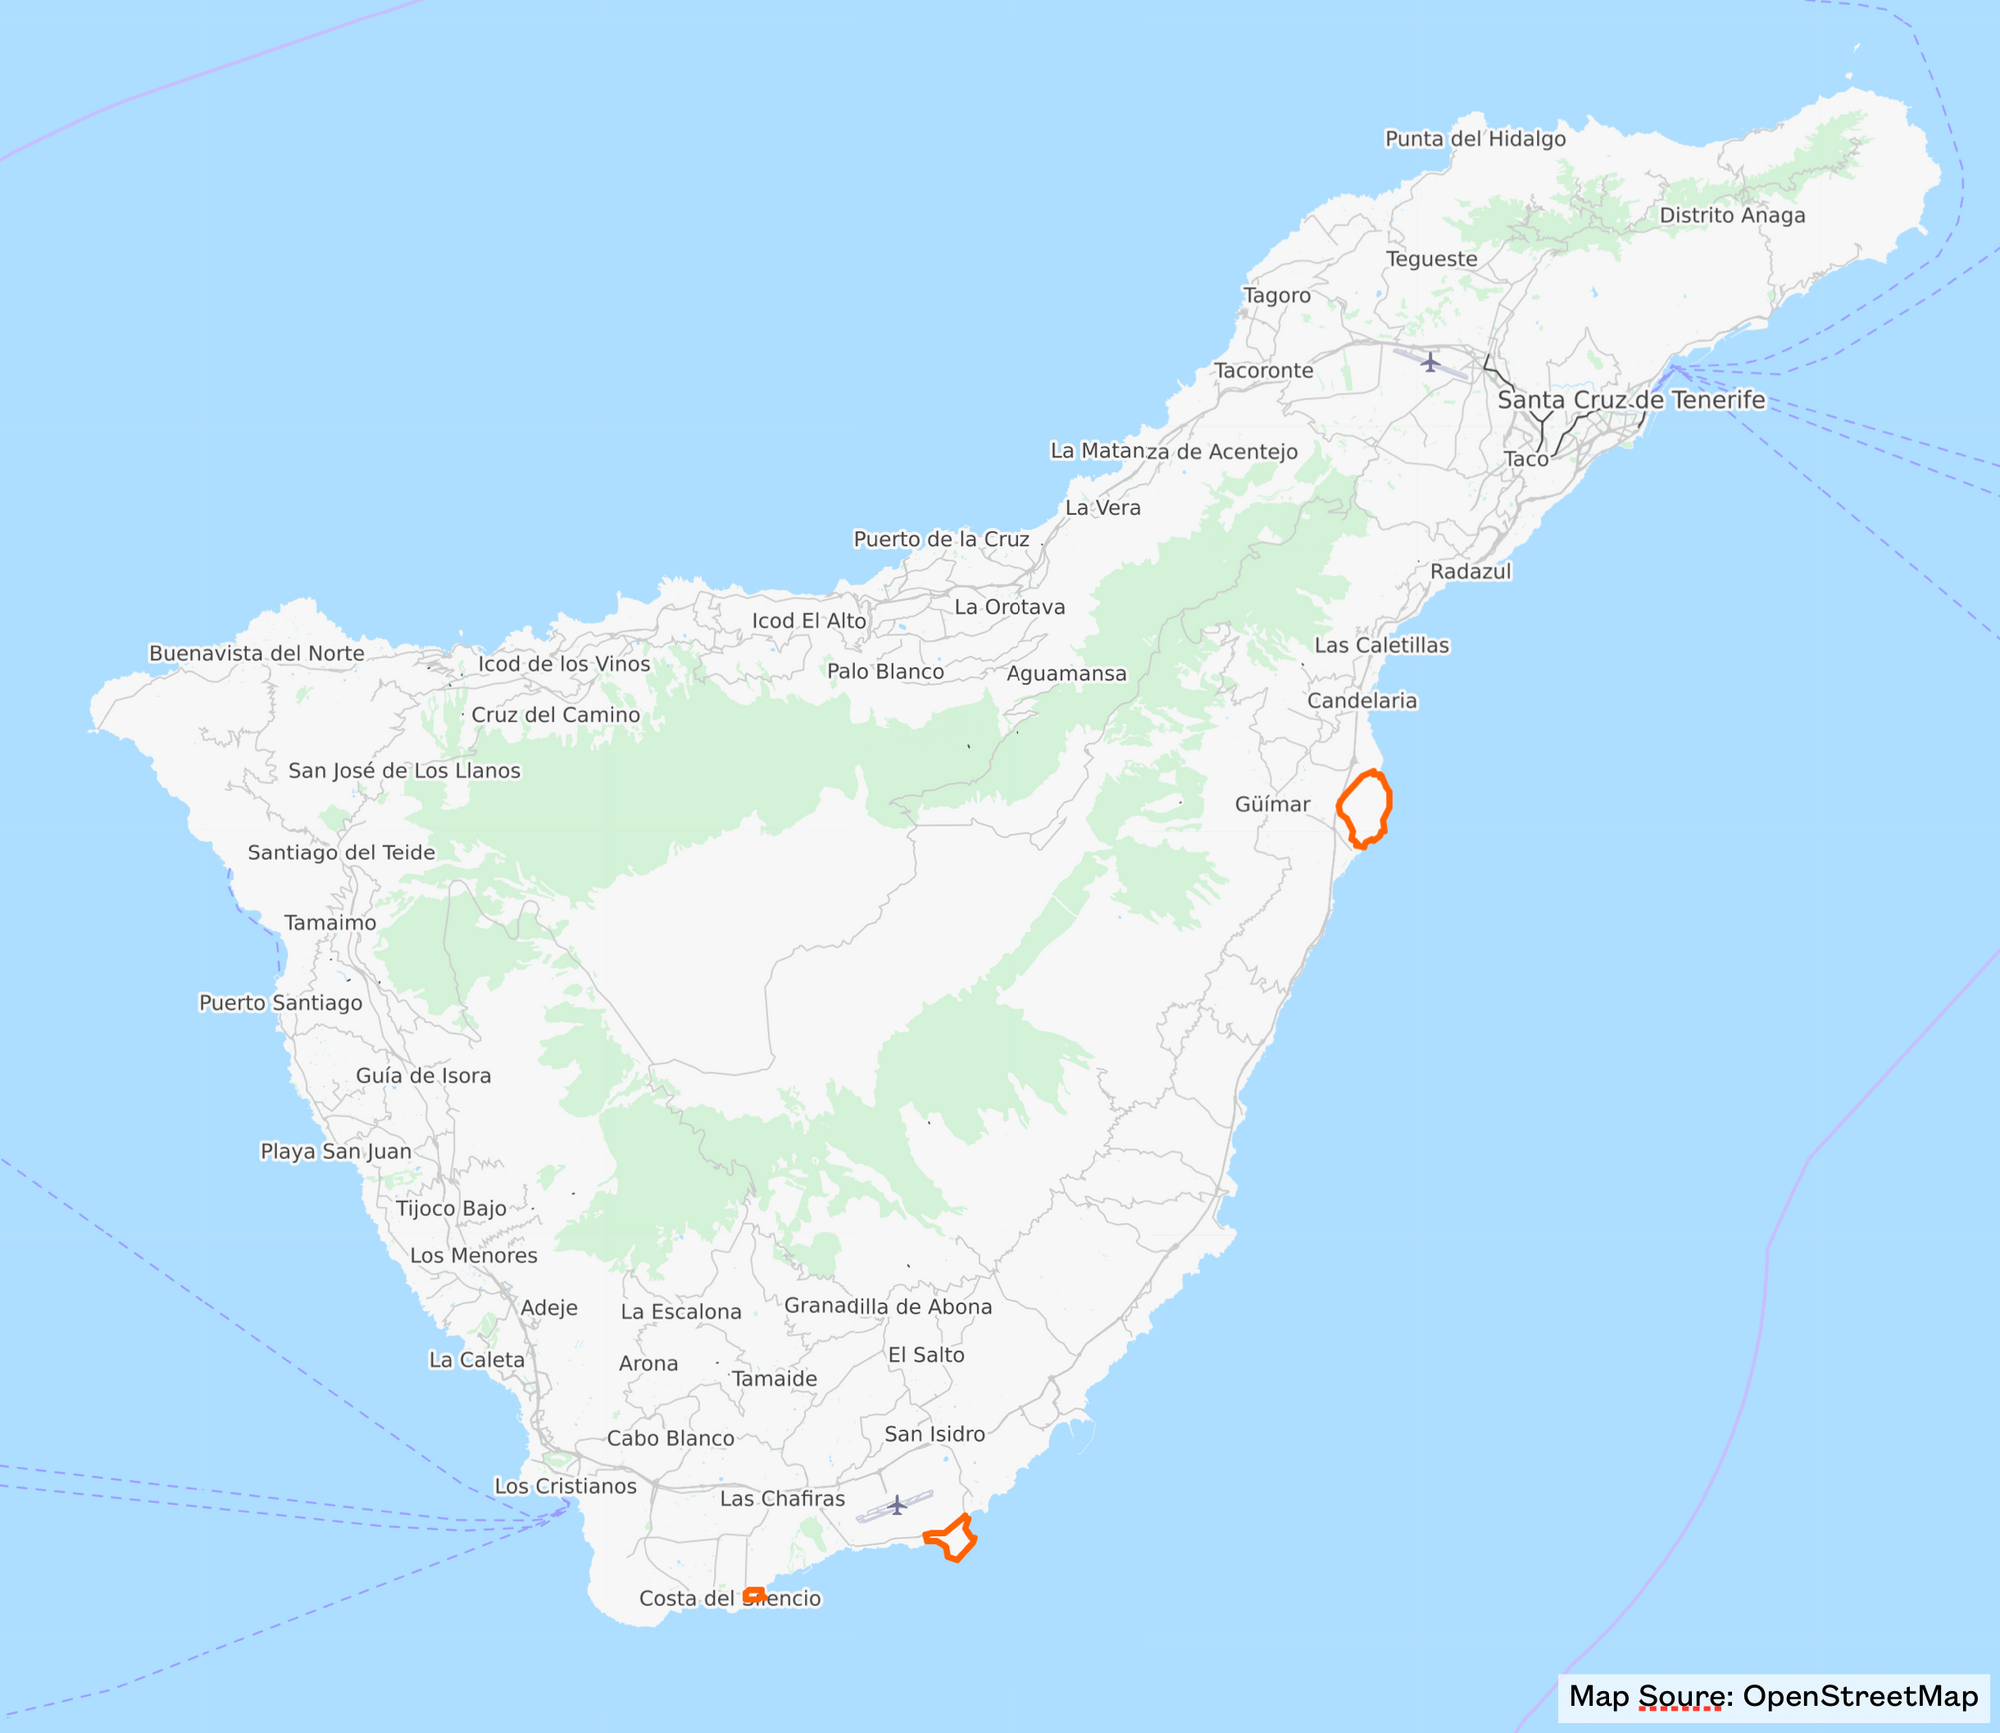 Map of Other Natural Parks for hikes in Tenerife